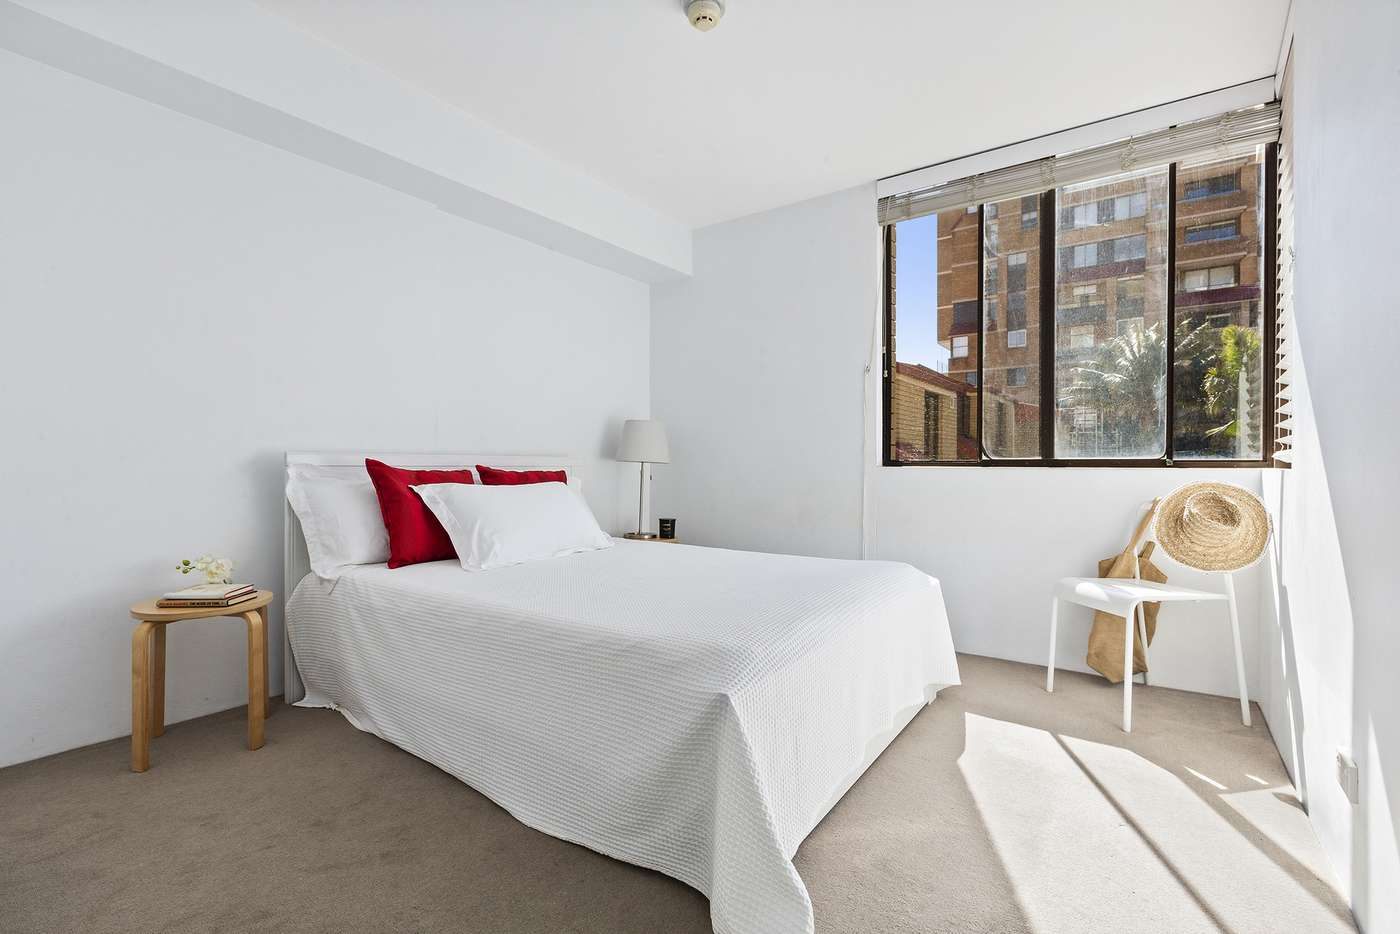 Fifth view of Homely apartment listing, 12/103 Victoria Street, Potts Point NSW 2011